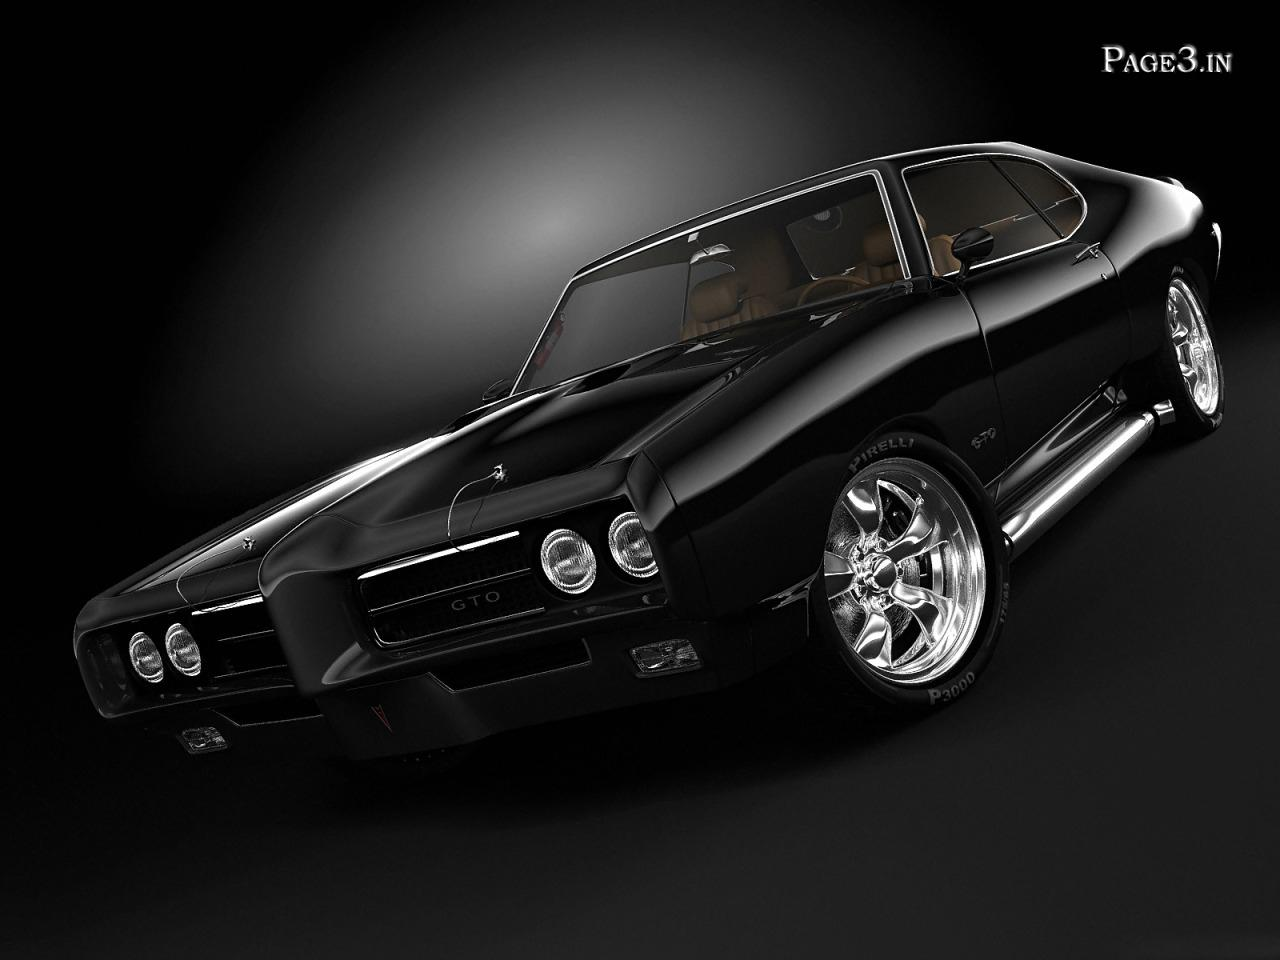 Hd Car wallpapers cool muscle cars wallpaper 1280x960